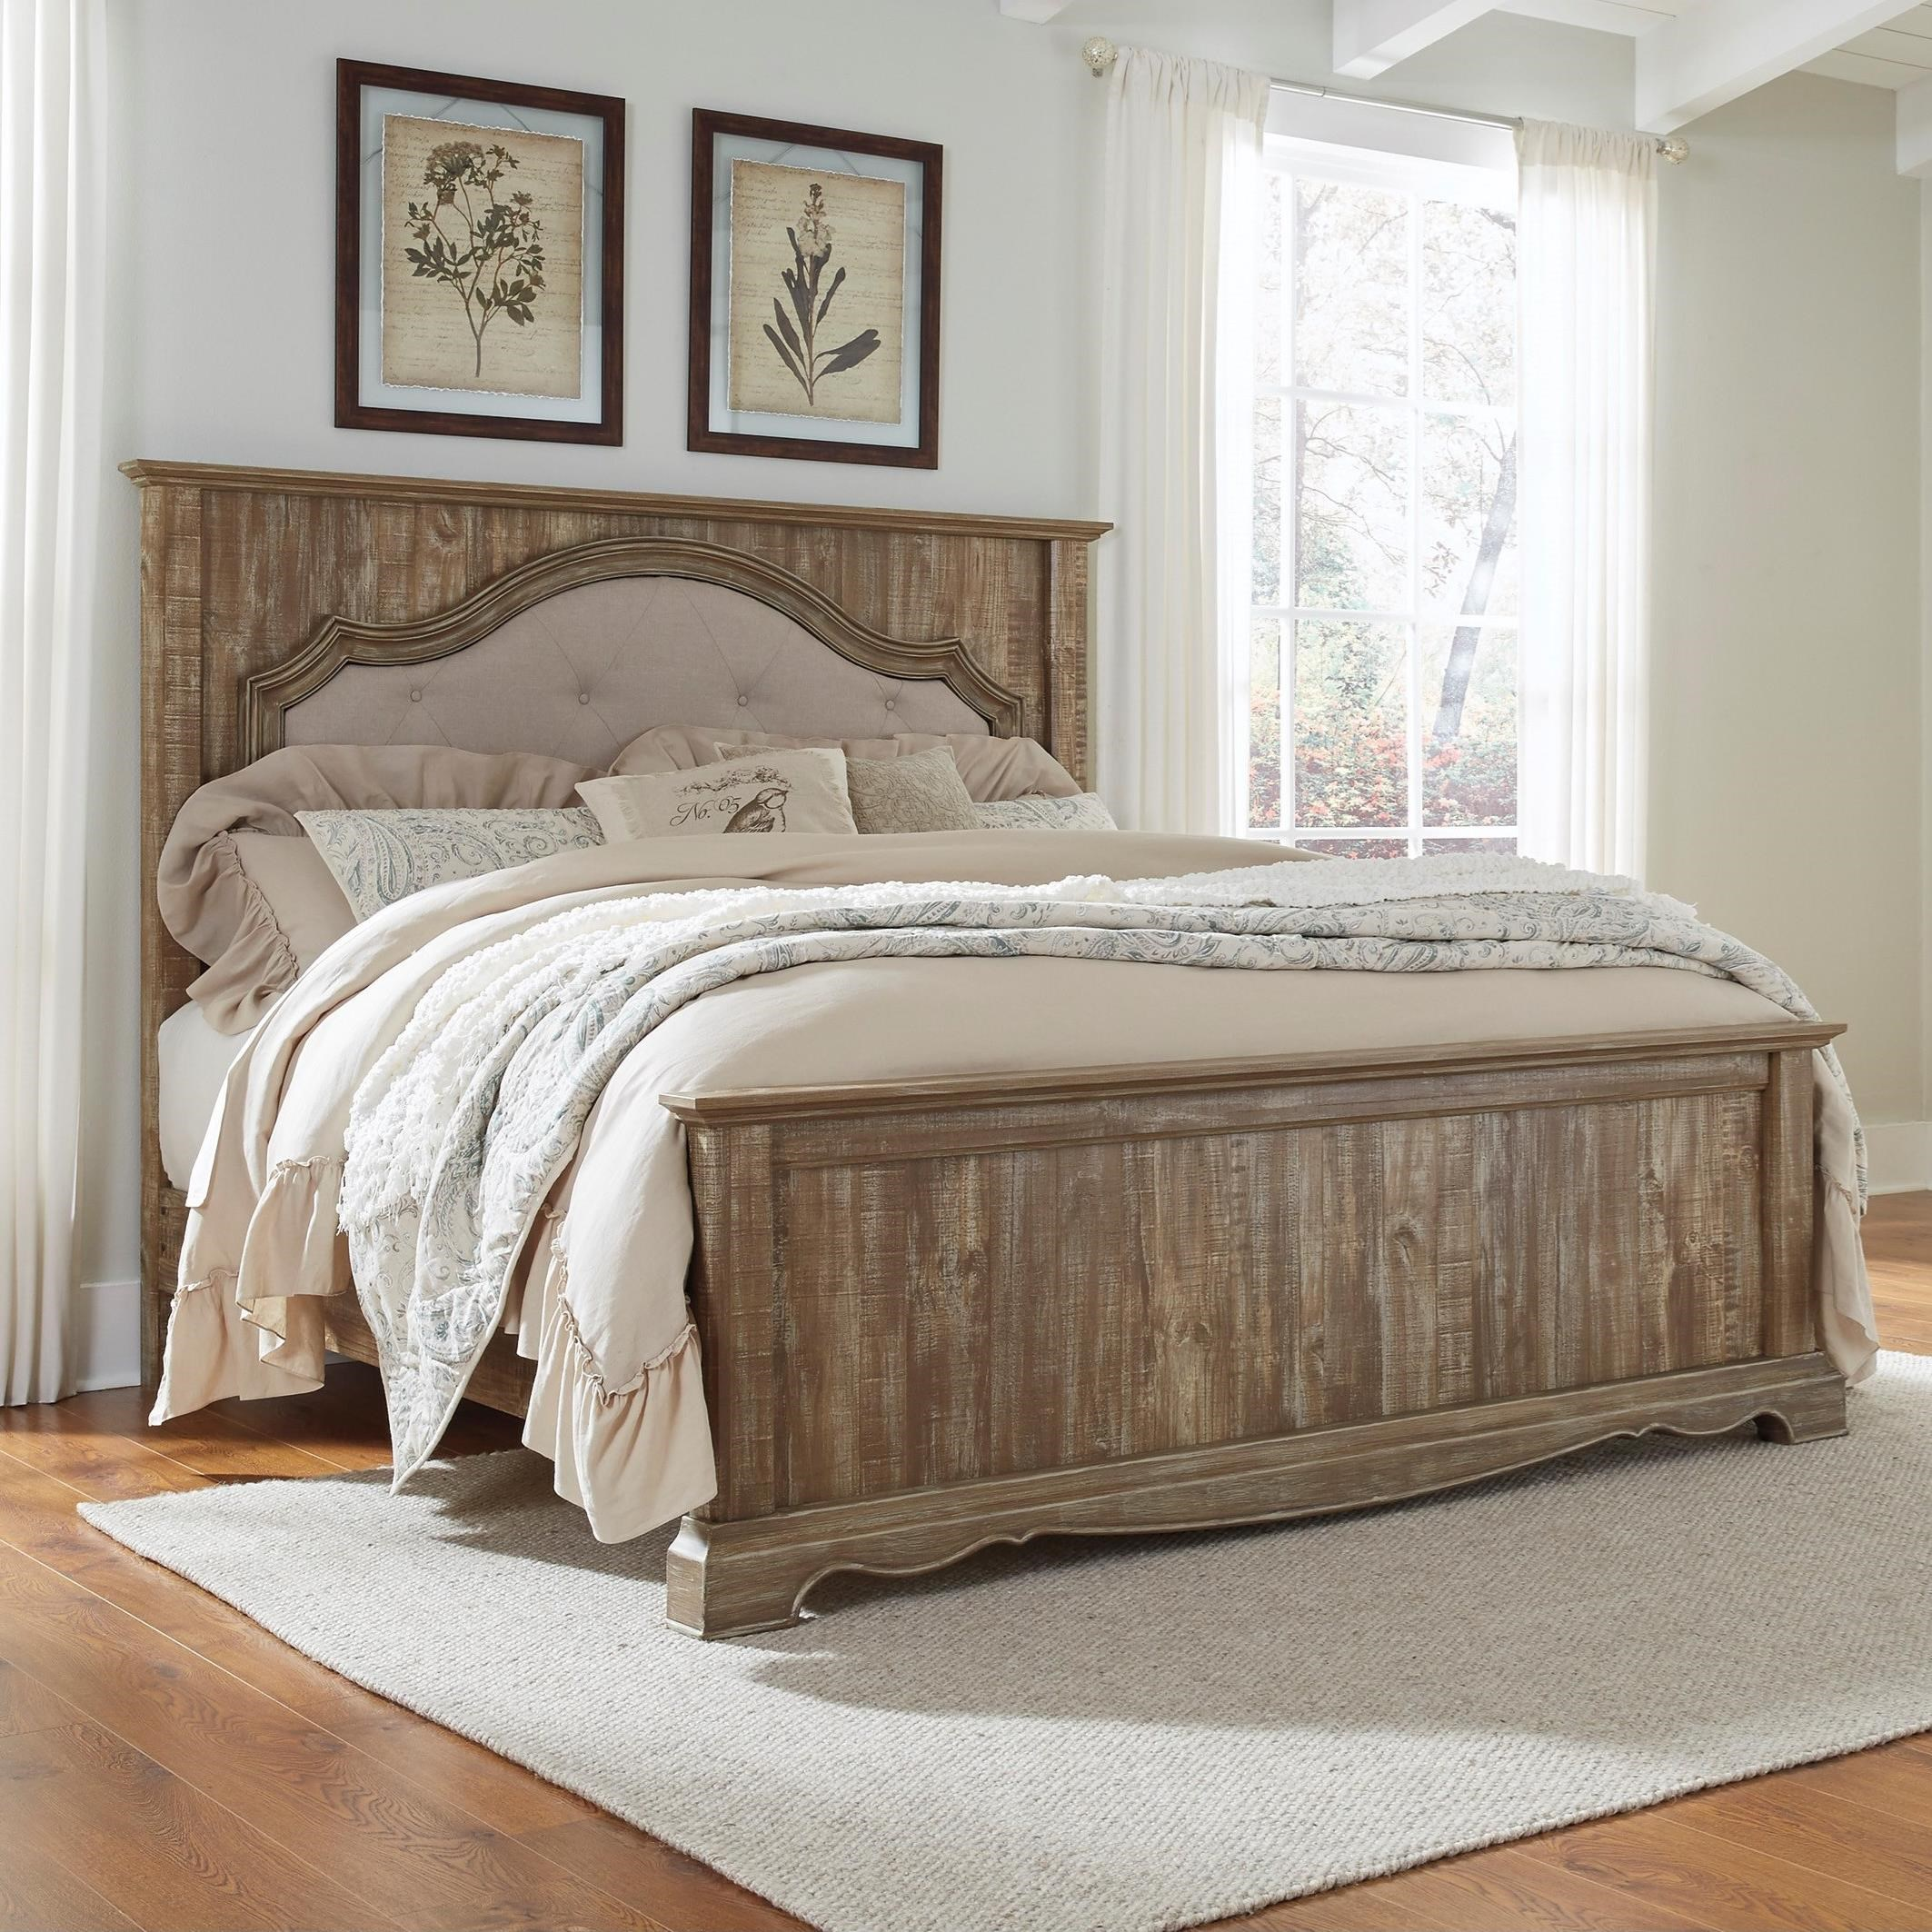 Signature Design by Ashley Shellington King Panel Bed - Item Number: B336-58+97+56